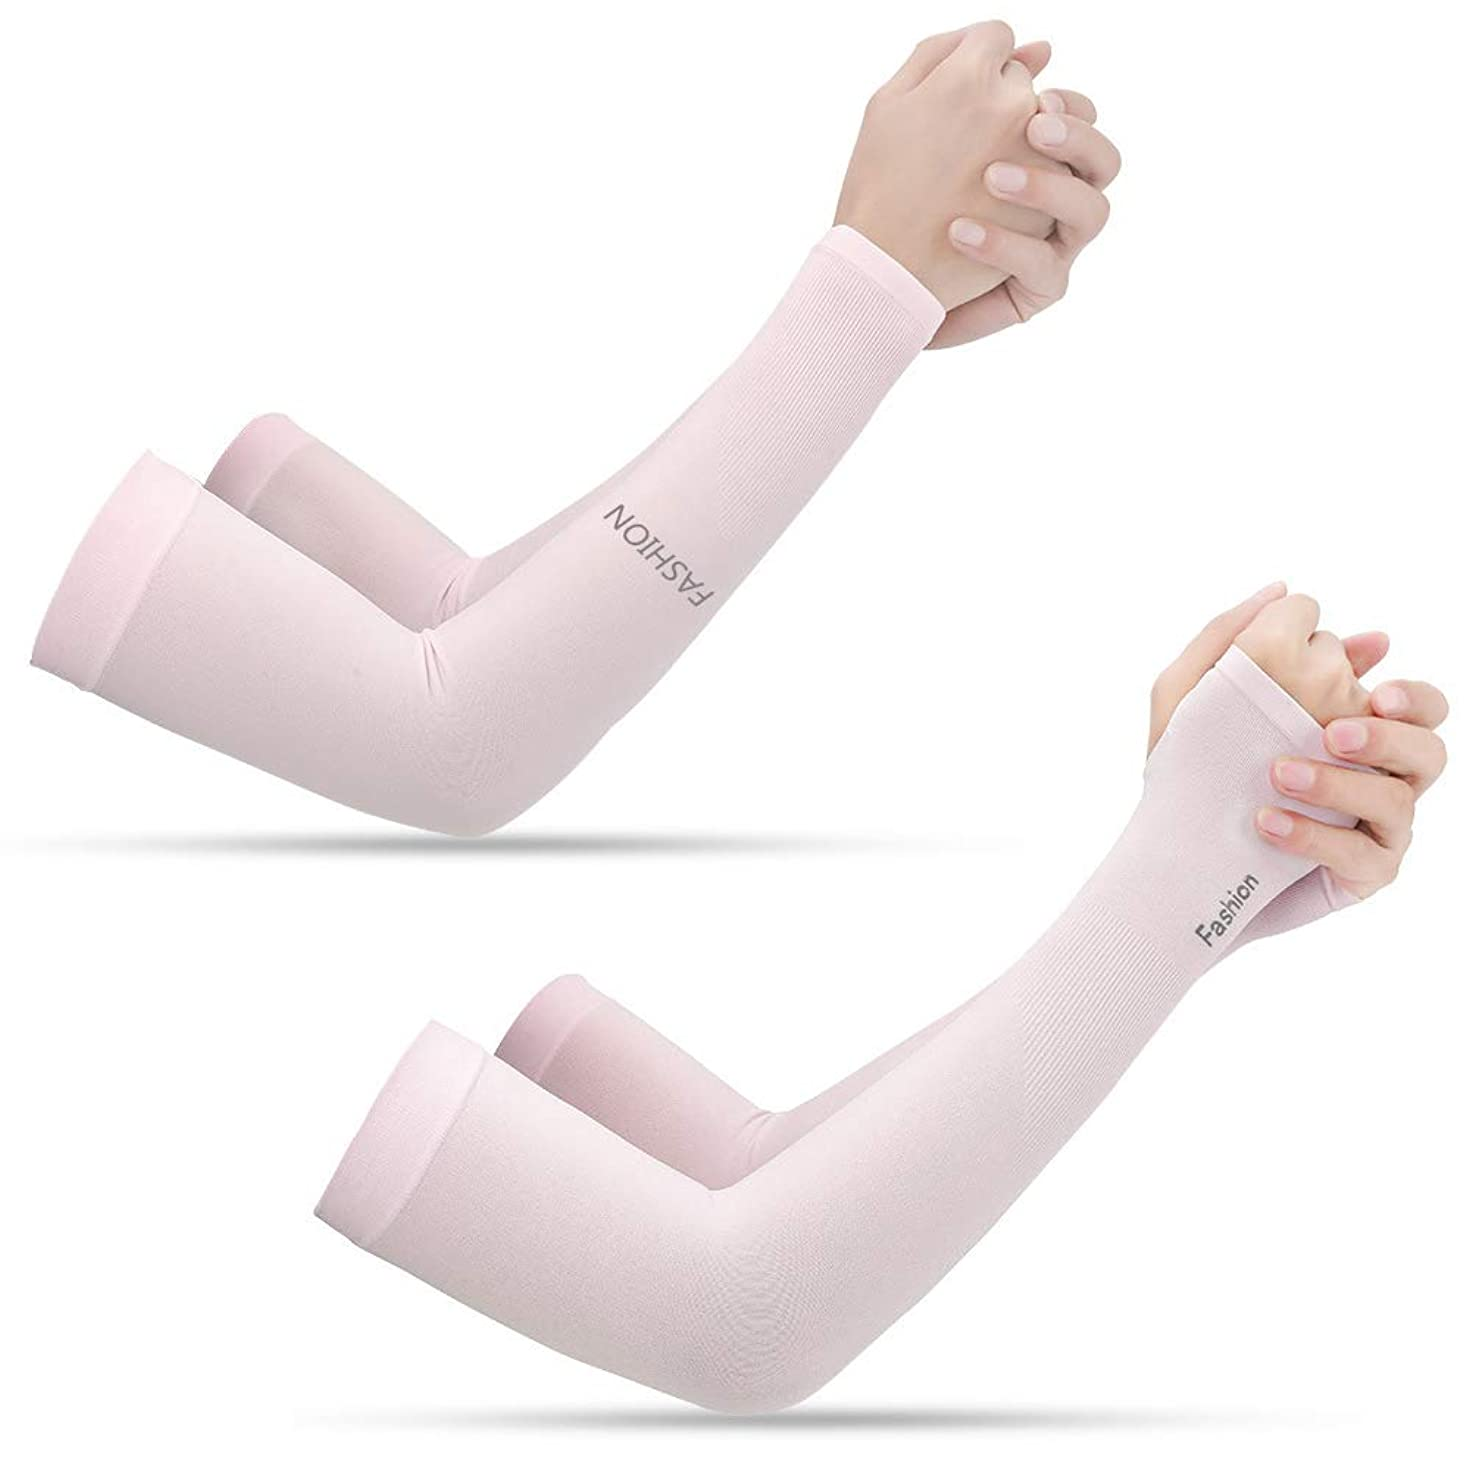 2 Pairs Unisex Arm Sleeves UV Sun Protection Cooling Sleeves for Driving Jogging Golfing Riding Outdoor Activities (Pink)